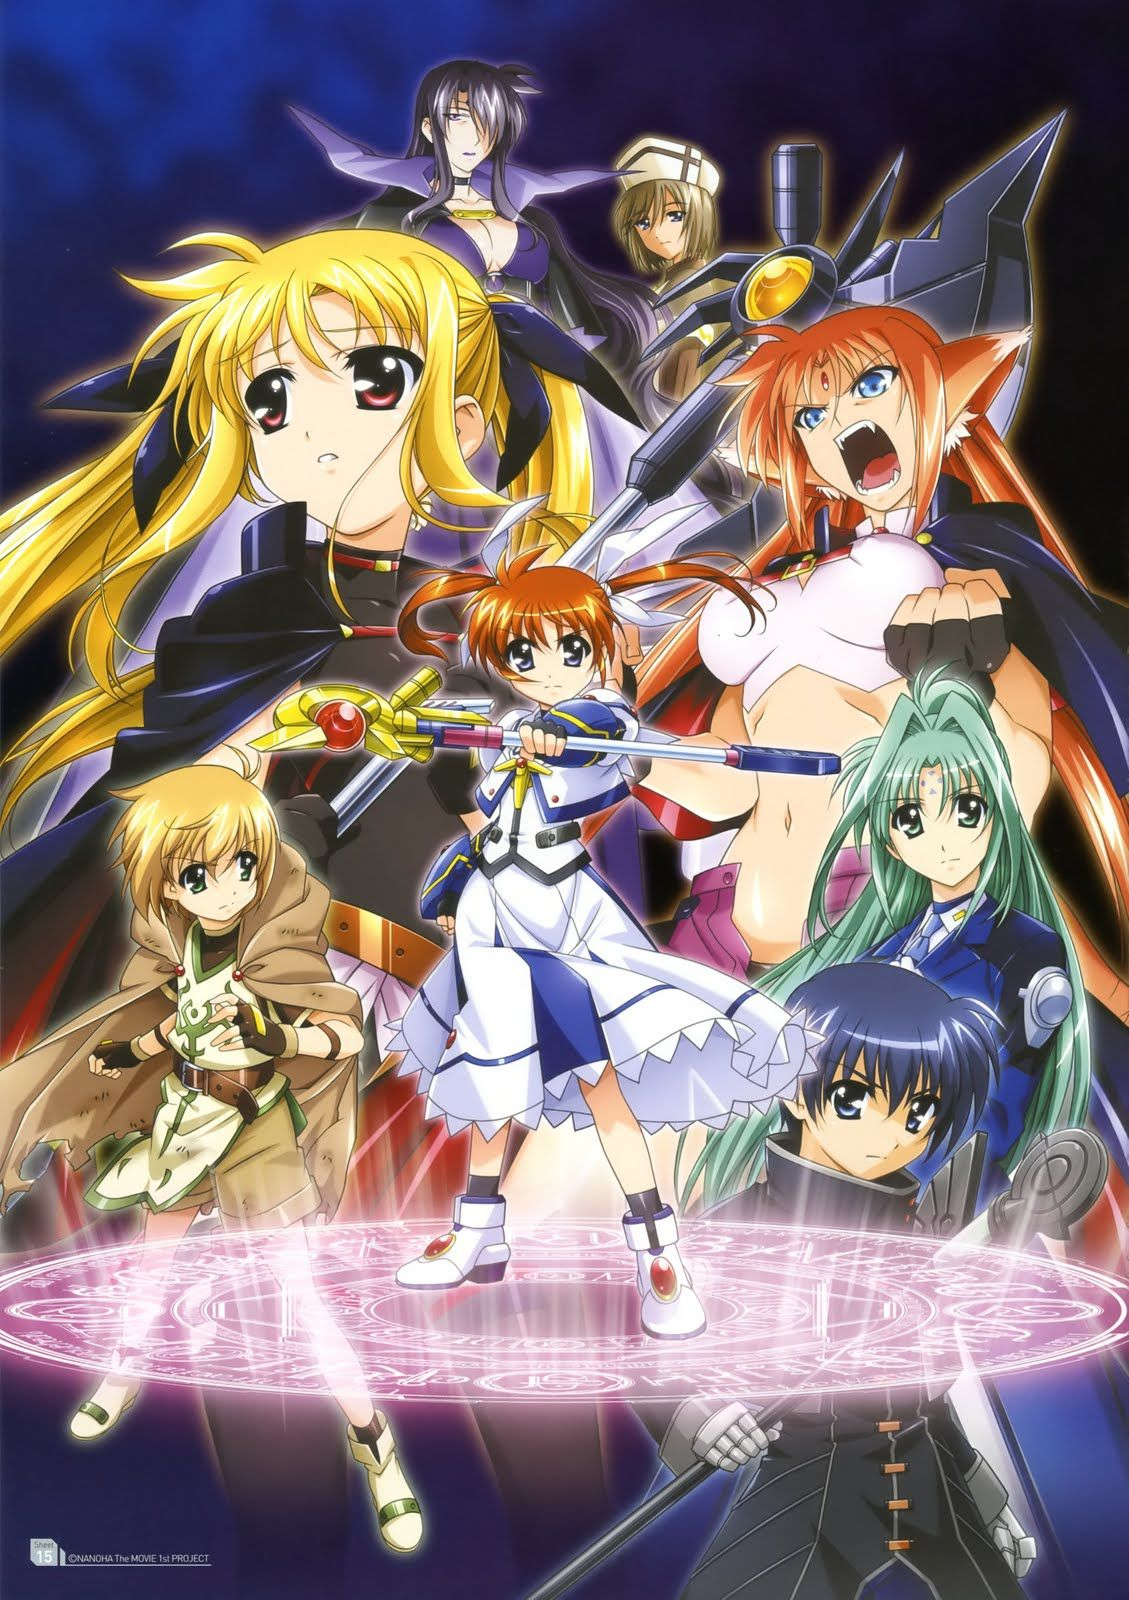 Mahou Shoujo Lyrical Nanoha The Movie 1st /// Genres